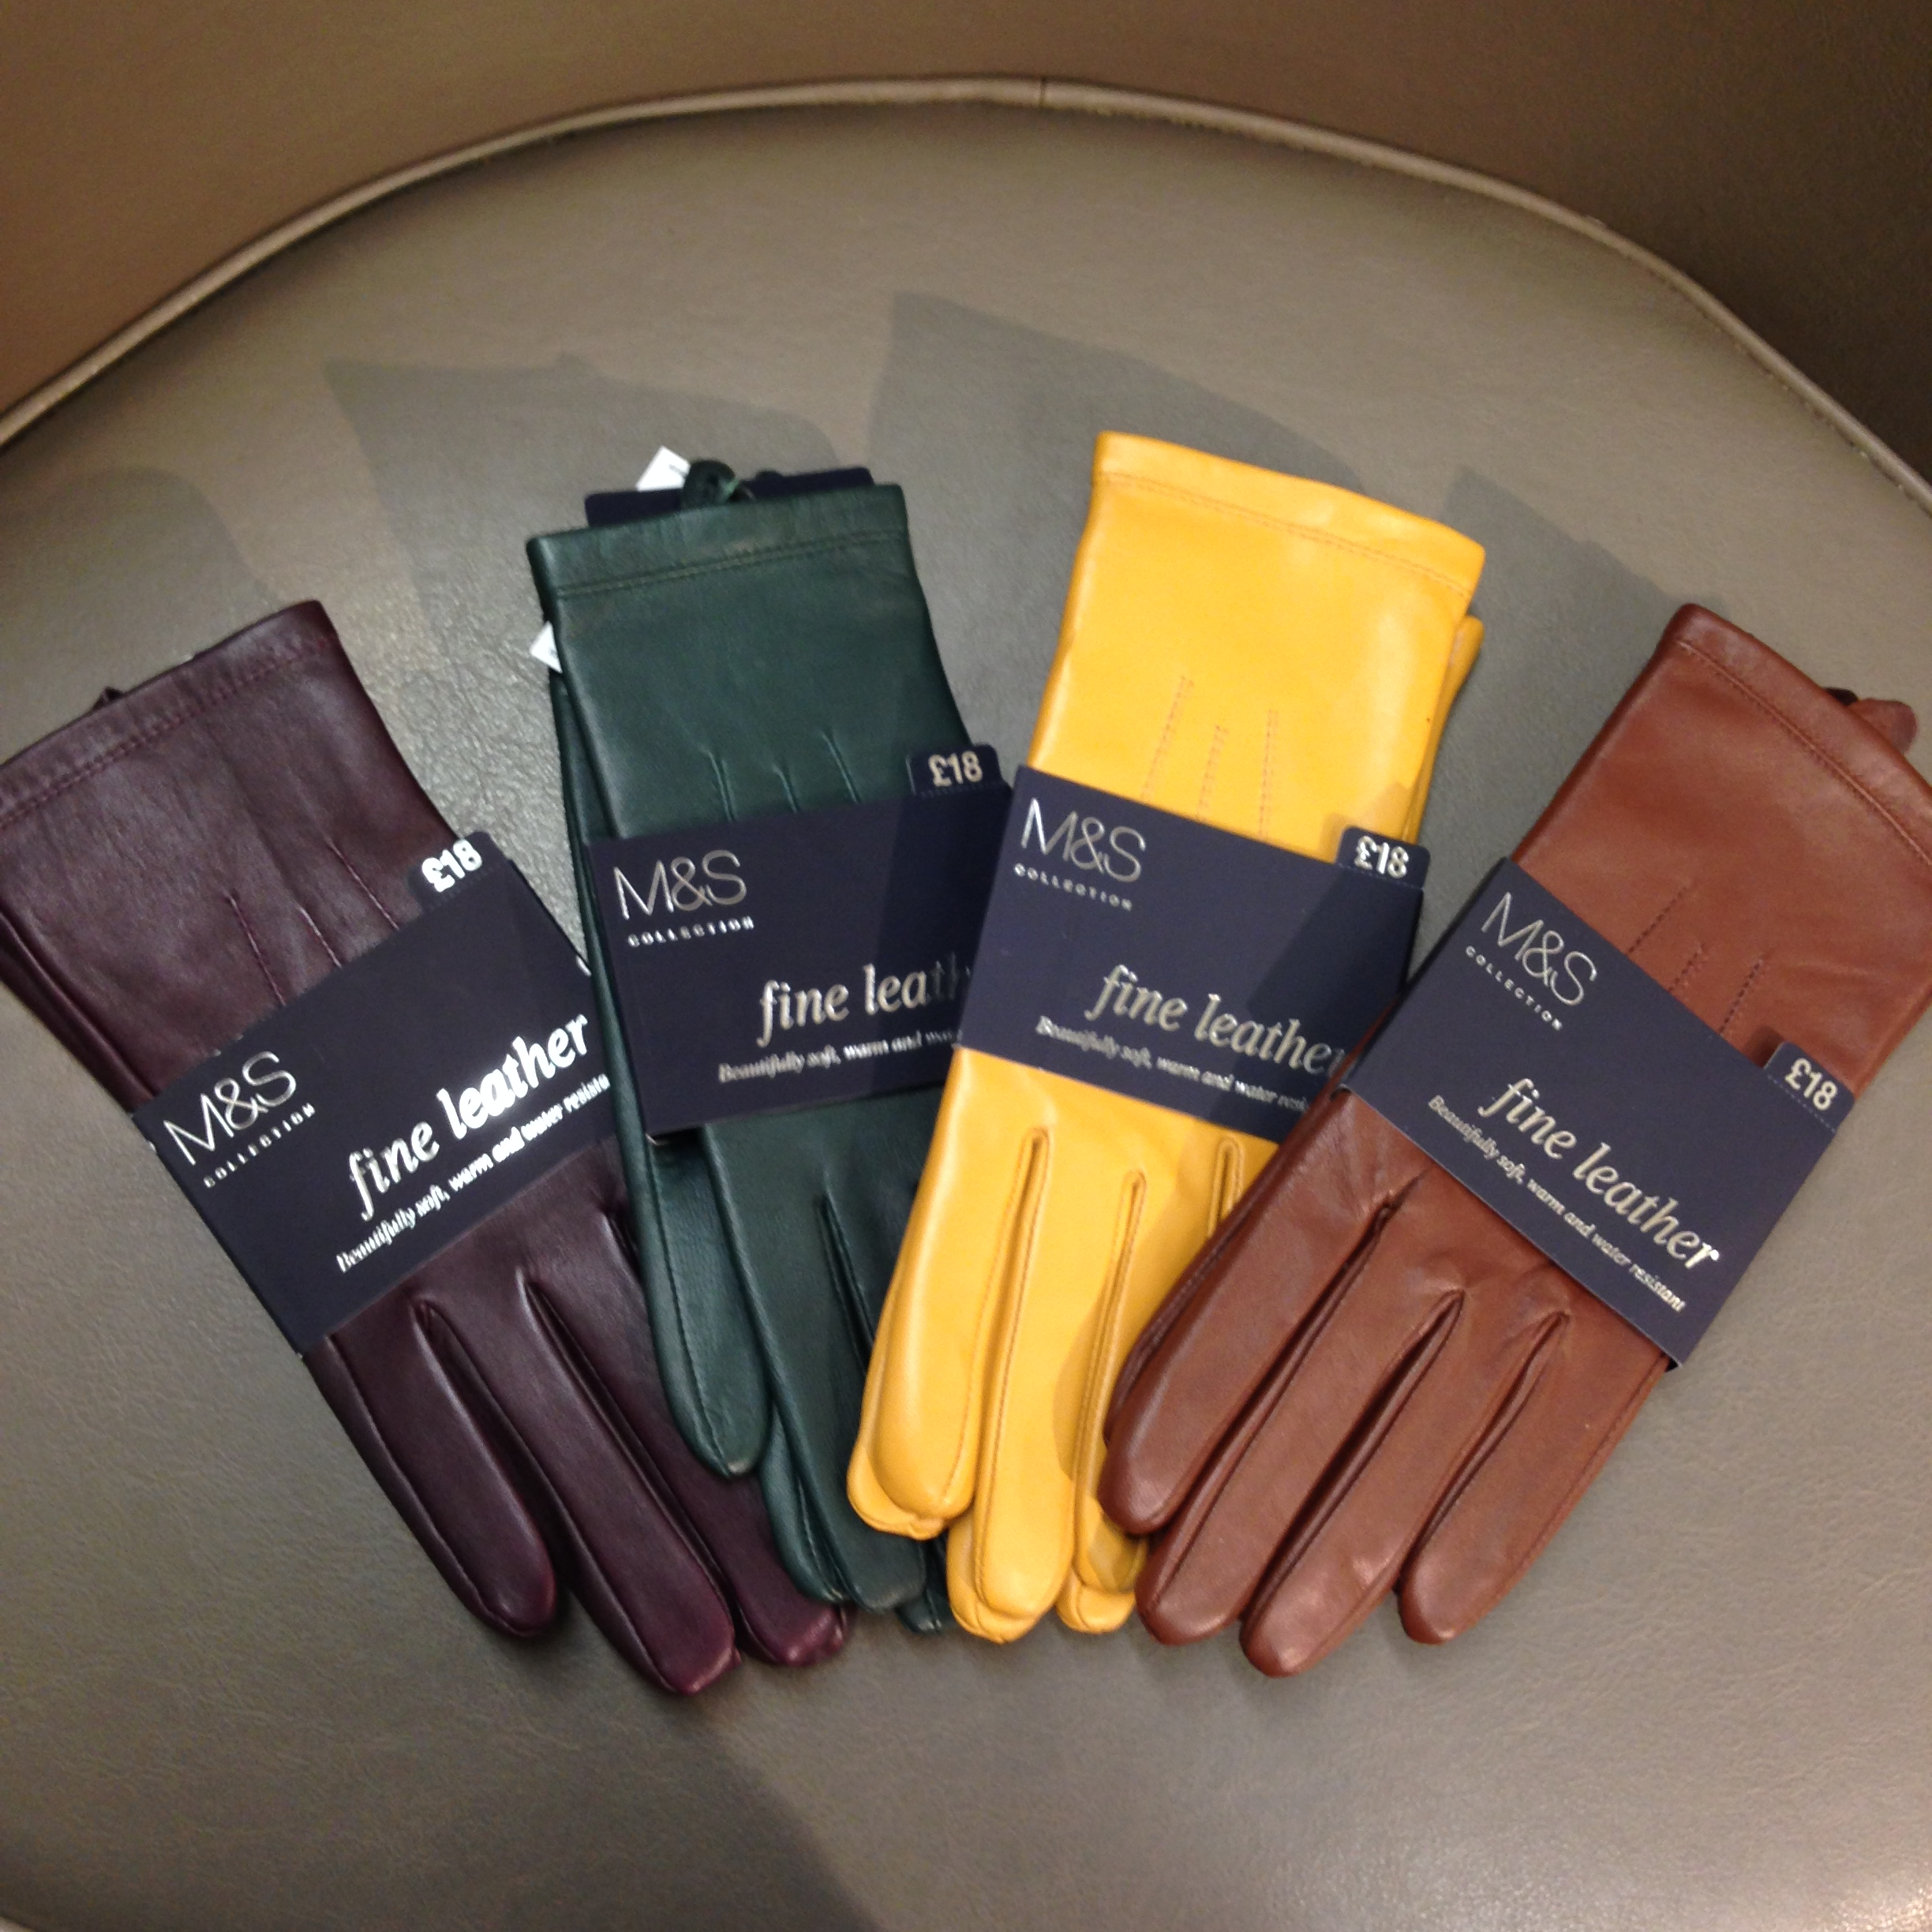 Ladies leather gloves asda - Gorgeous Leather Gloves In Burgundy Forest Green Mustard And Tan These Really Represent Autumn For Me And Given I Have A Lot Of These Shades In My